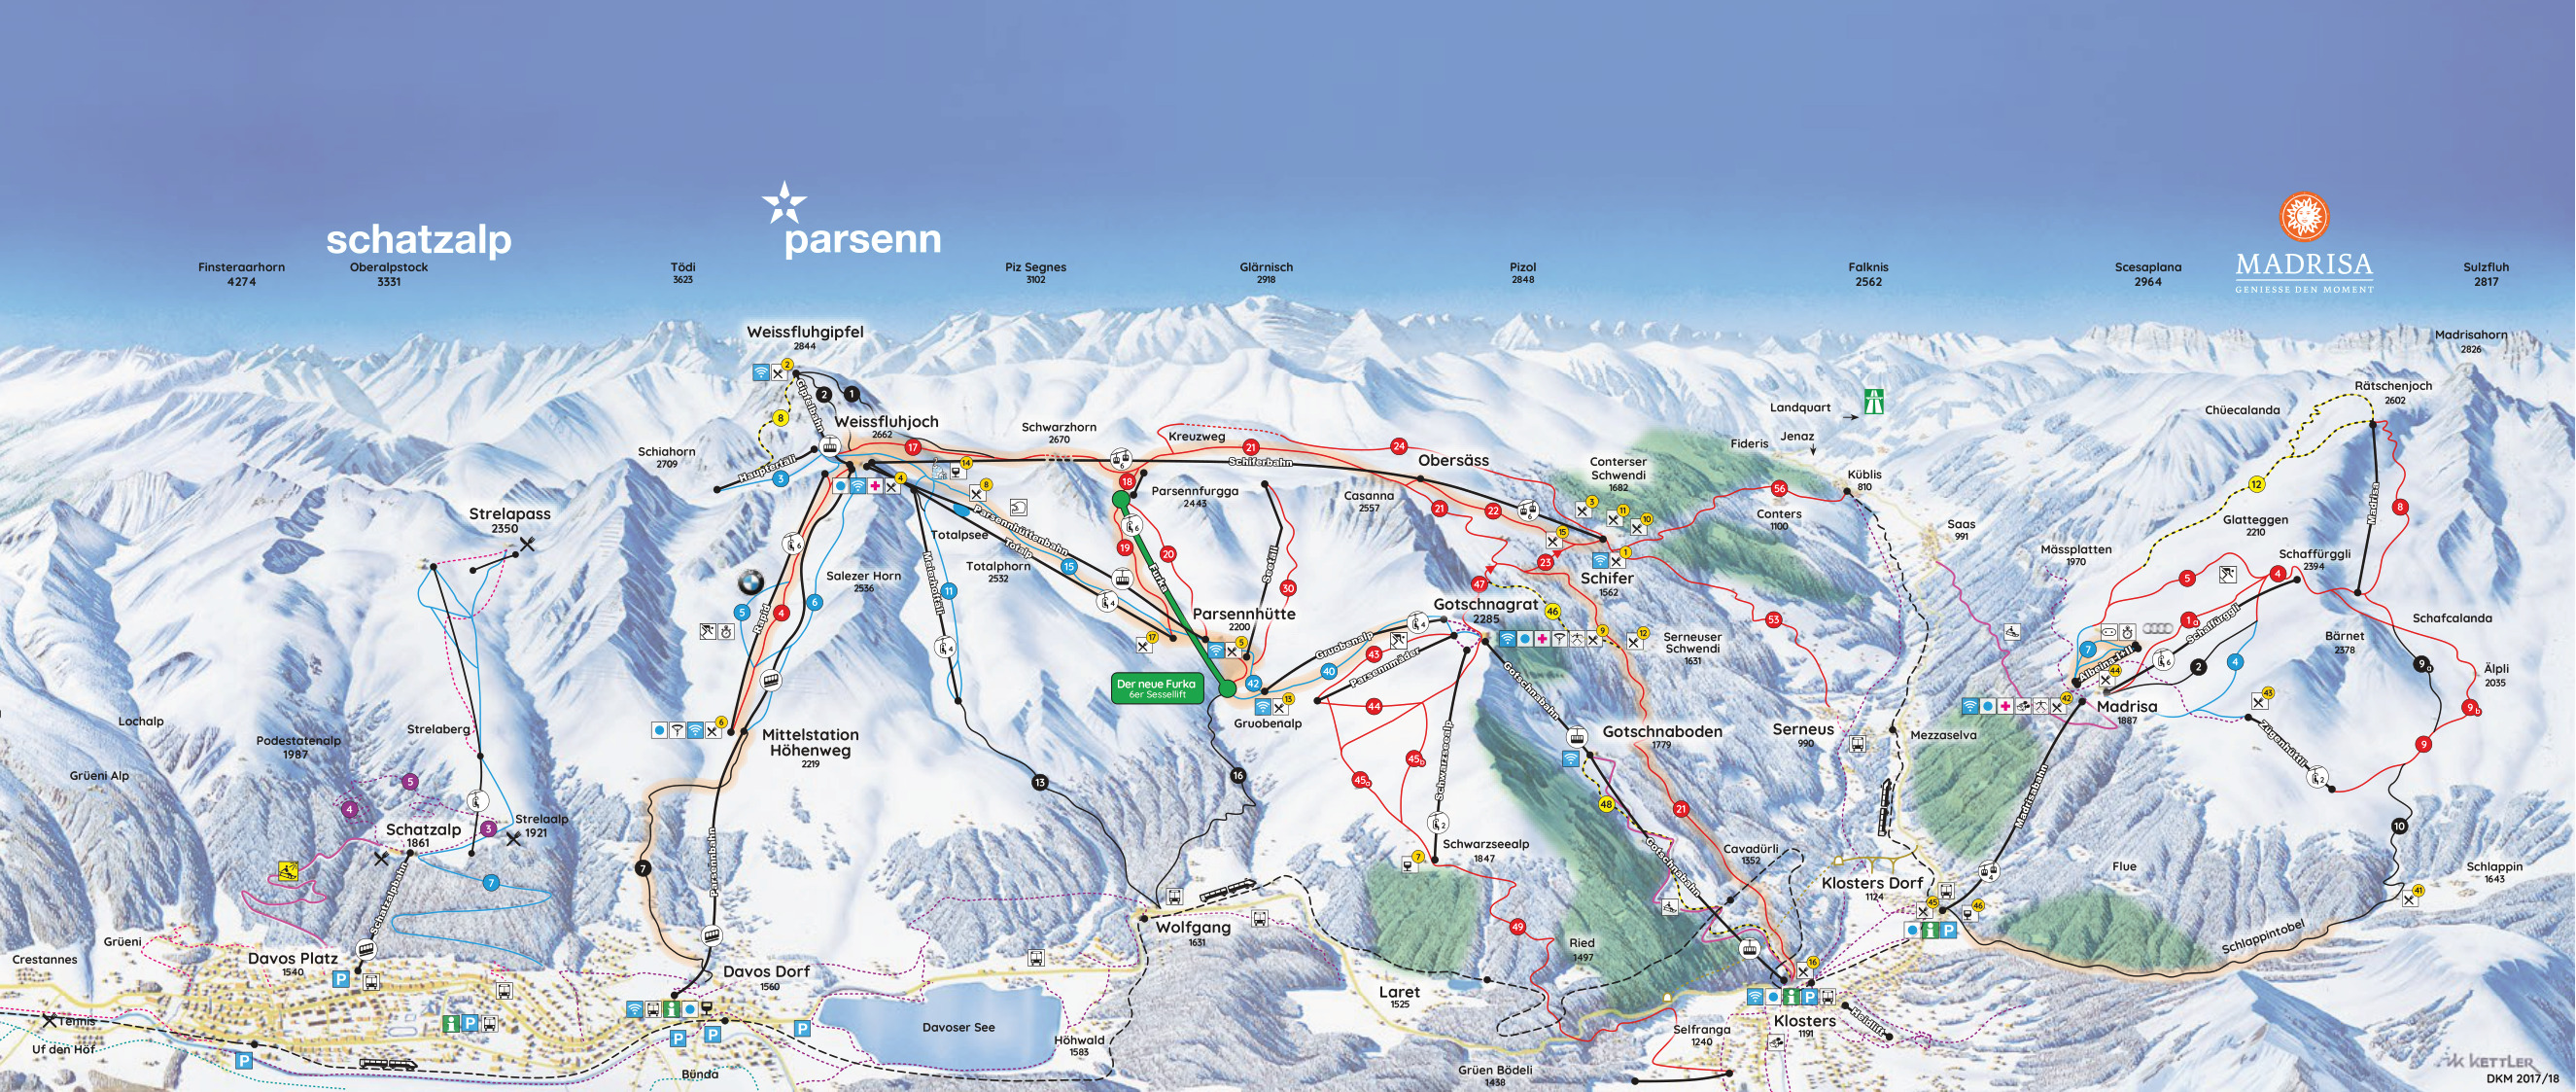 Davos-Klosters - SkiMap.org